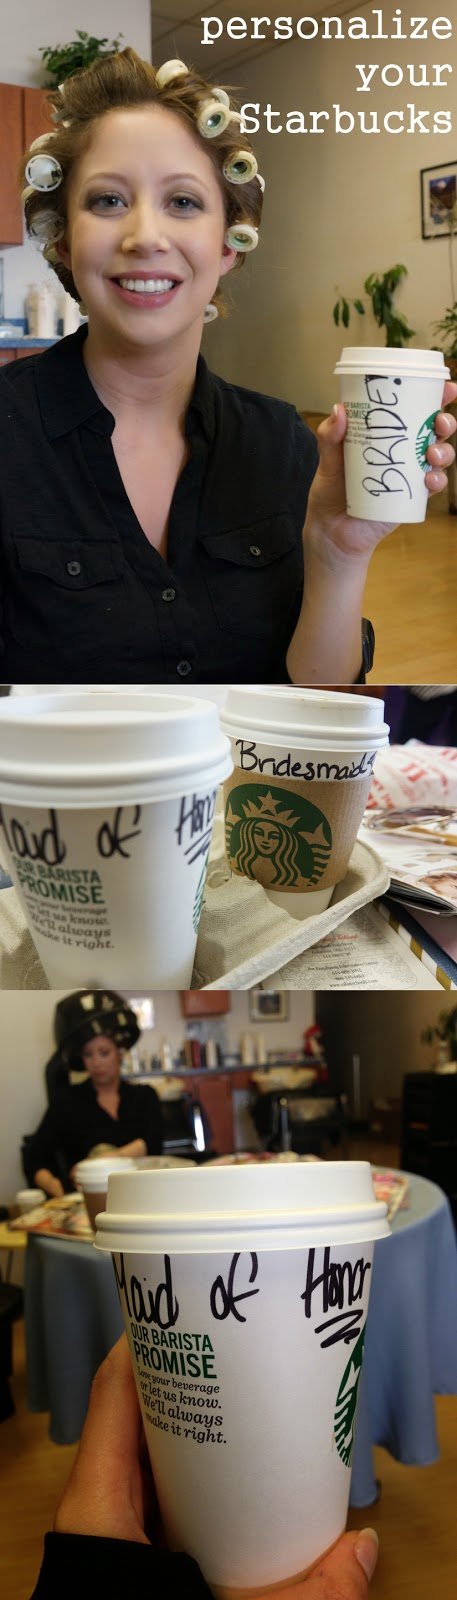 personalize your starbucks